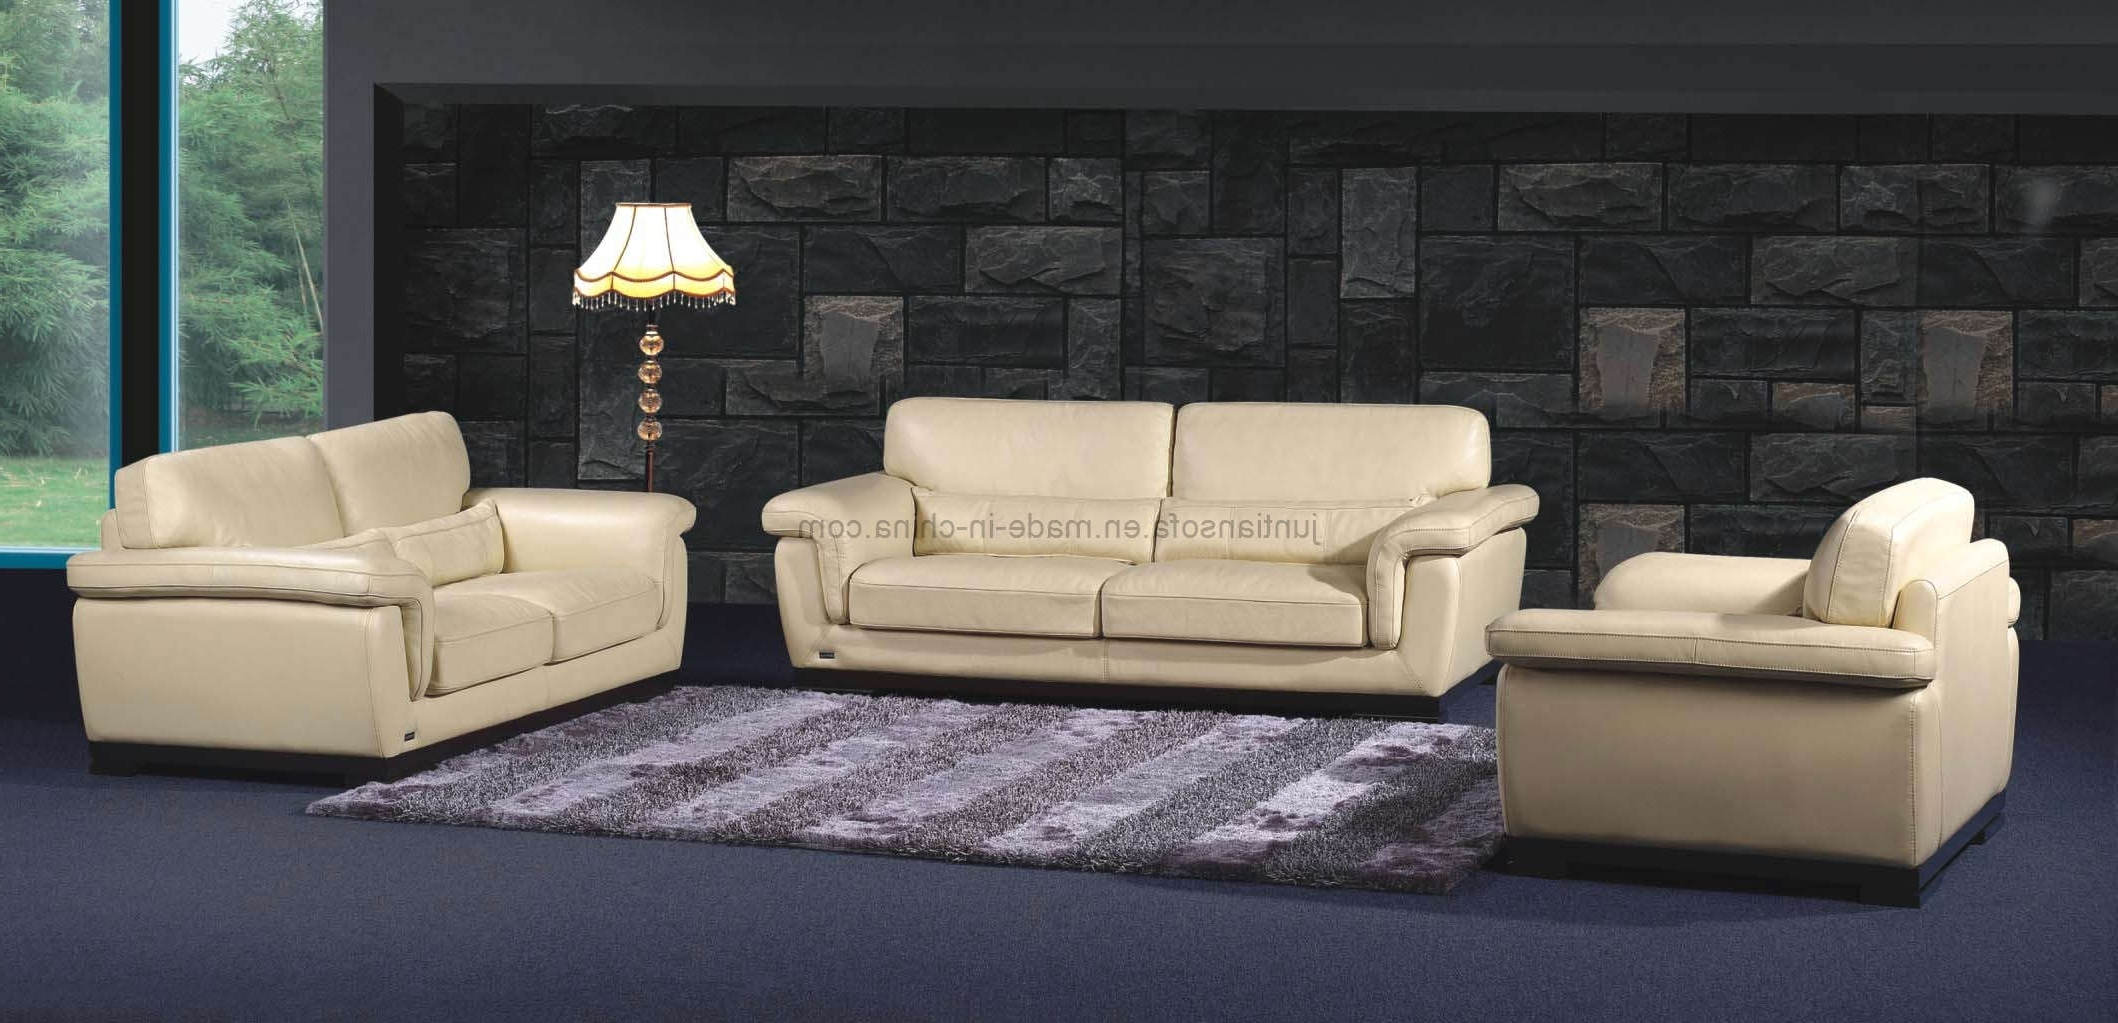 2017 Quality Sectional Sofas Intended For Lovely High Quality Sectional Sofa 30 For Sofa Room Ideas With (View 1 of 15)